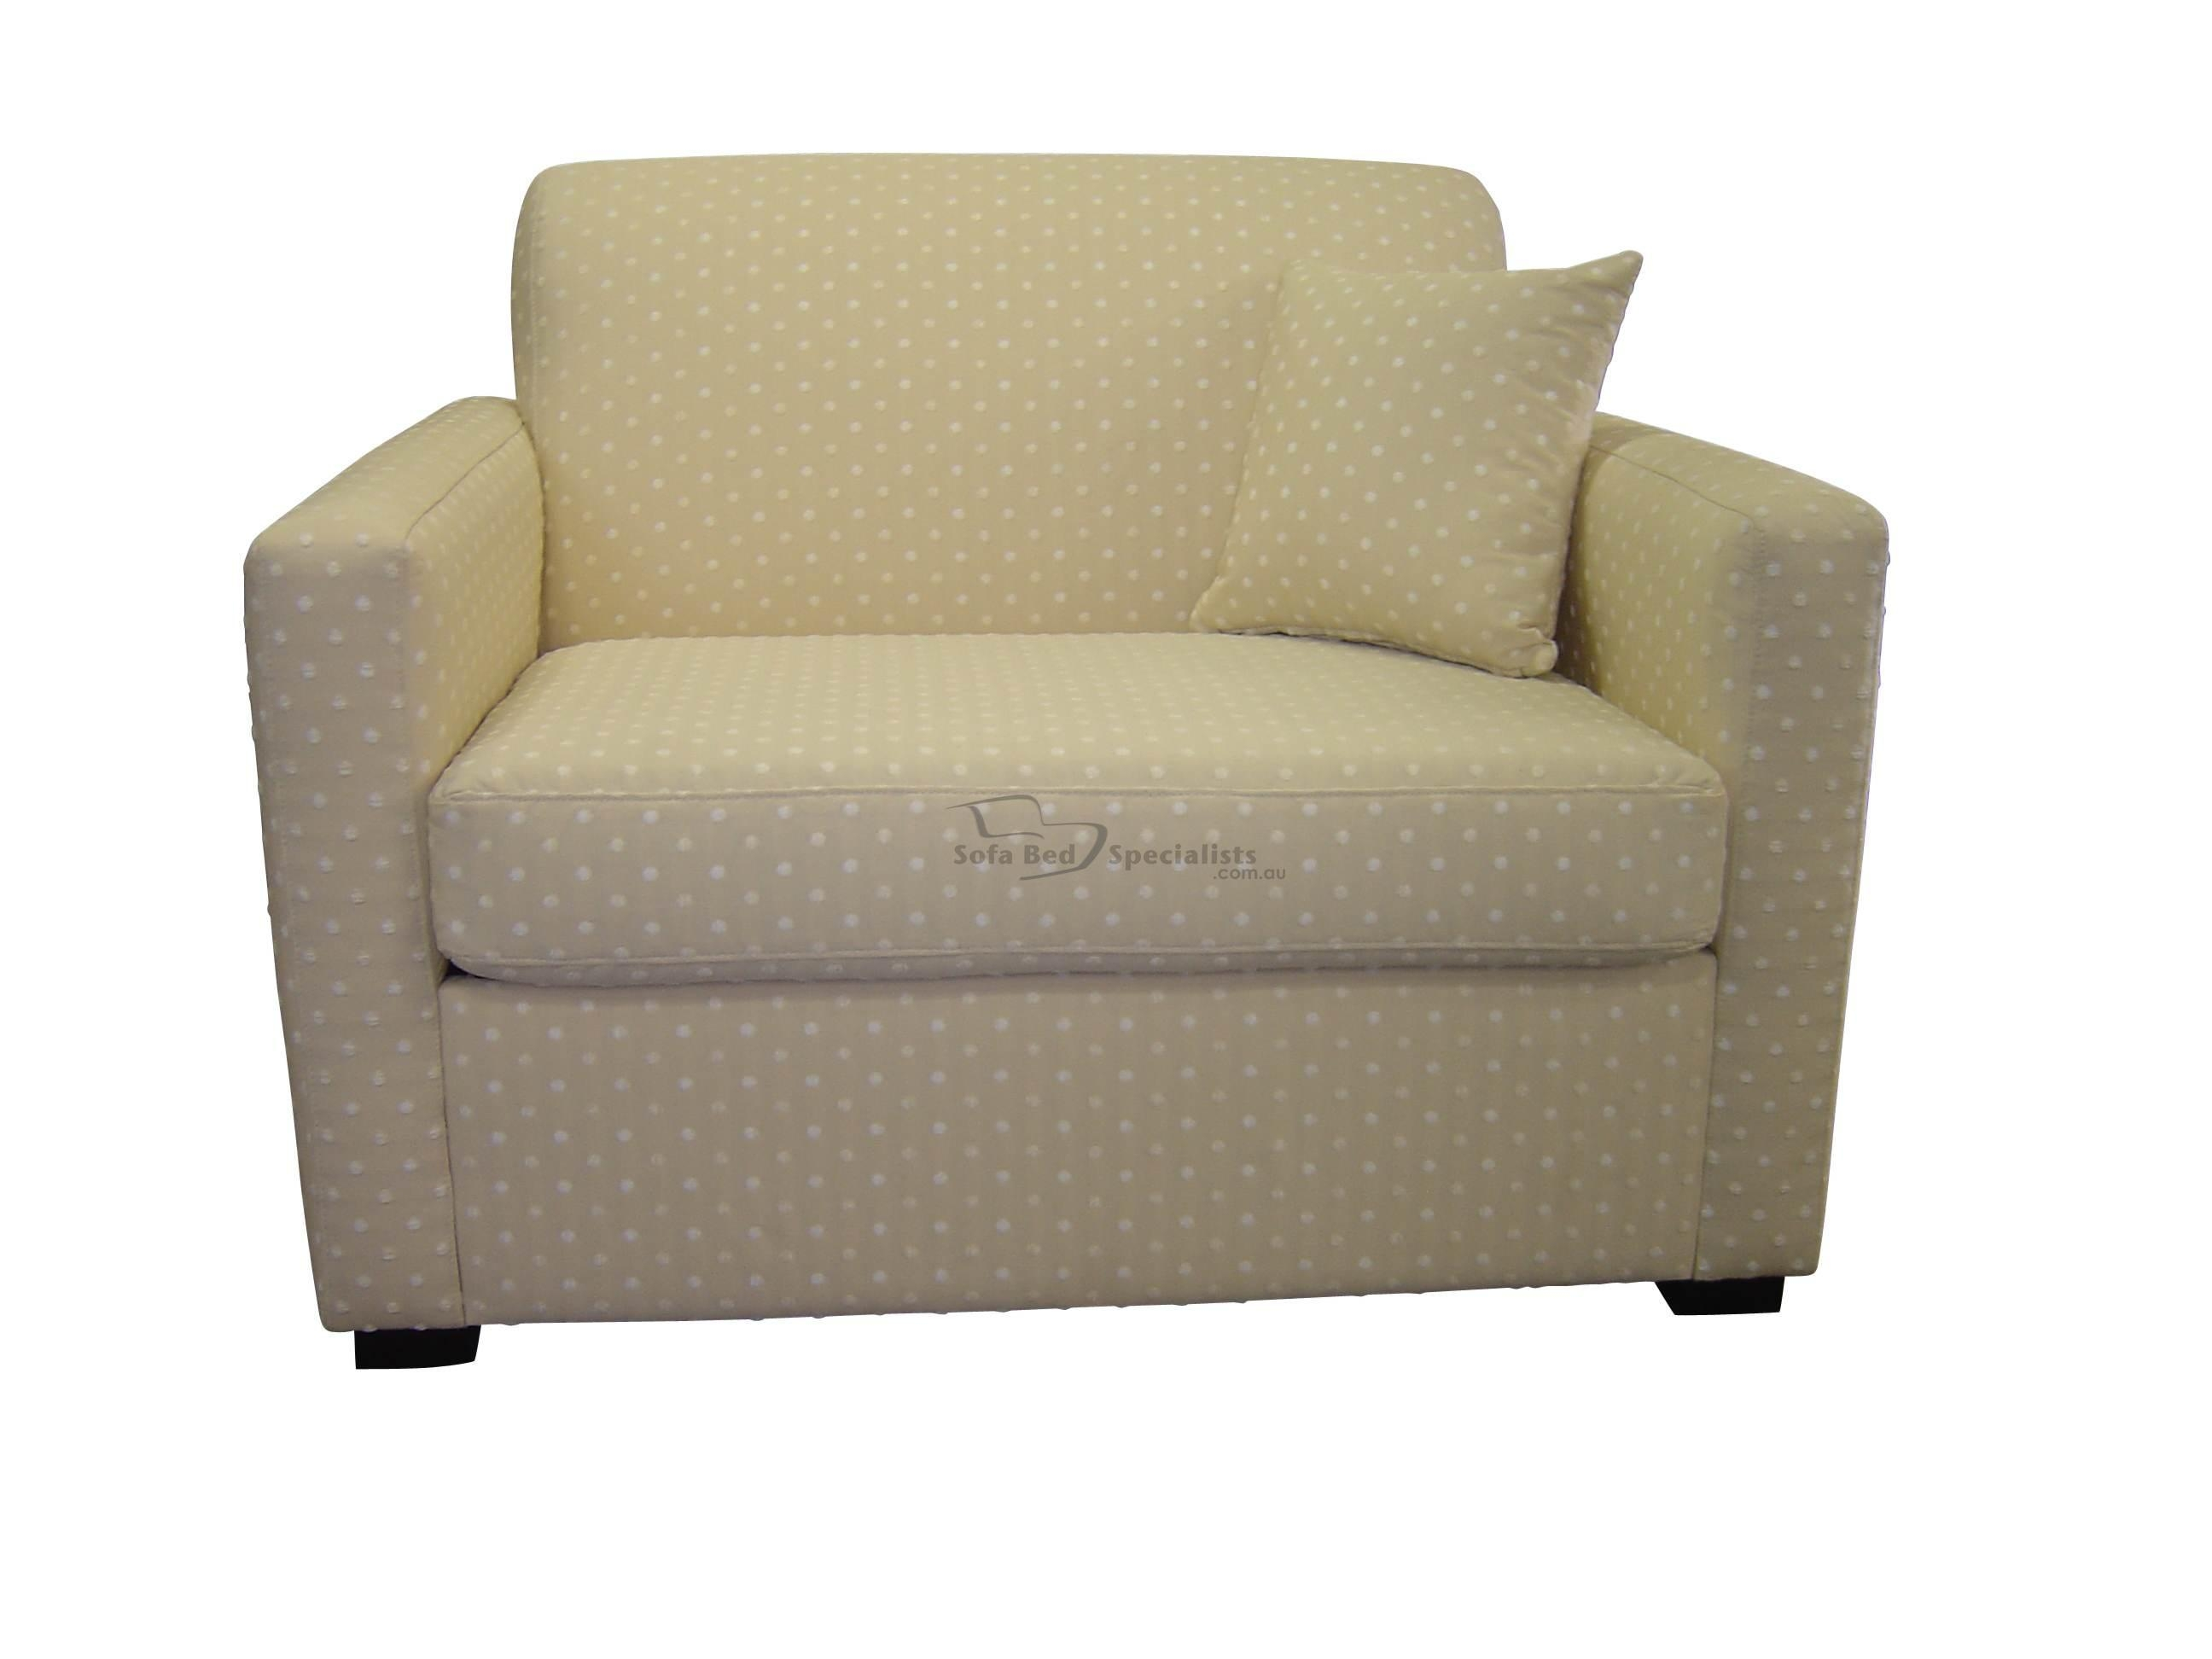 Chair Sofabed Bowman – Sofa Bed Specialists With Single Chair Sofa Beds (Image 4 of 22)